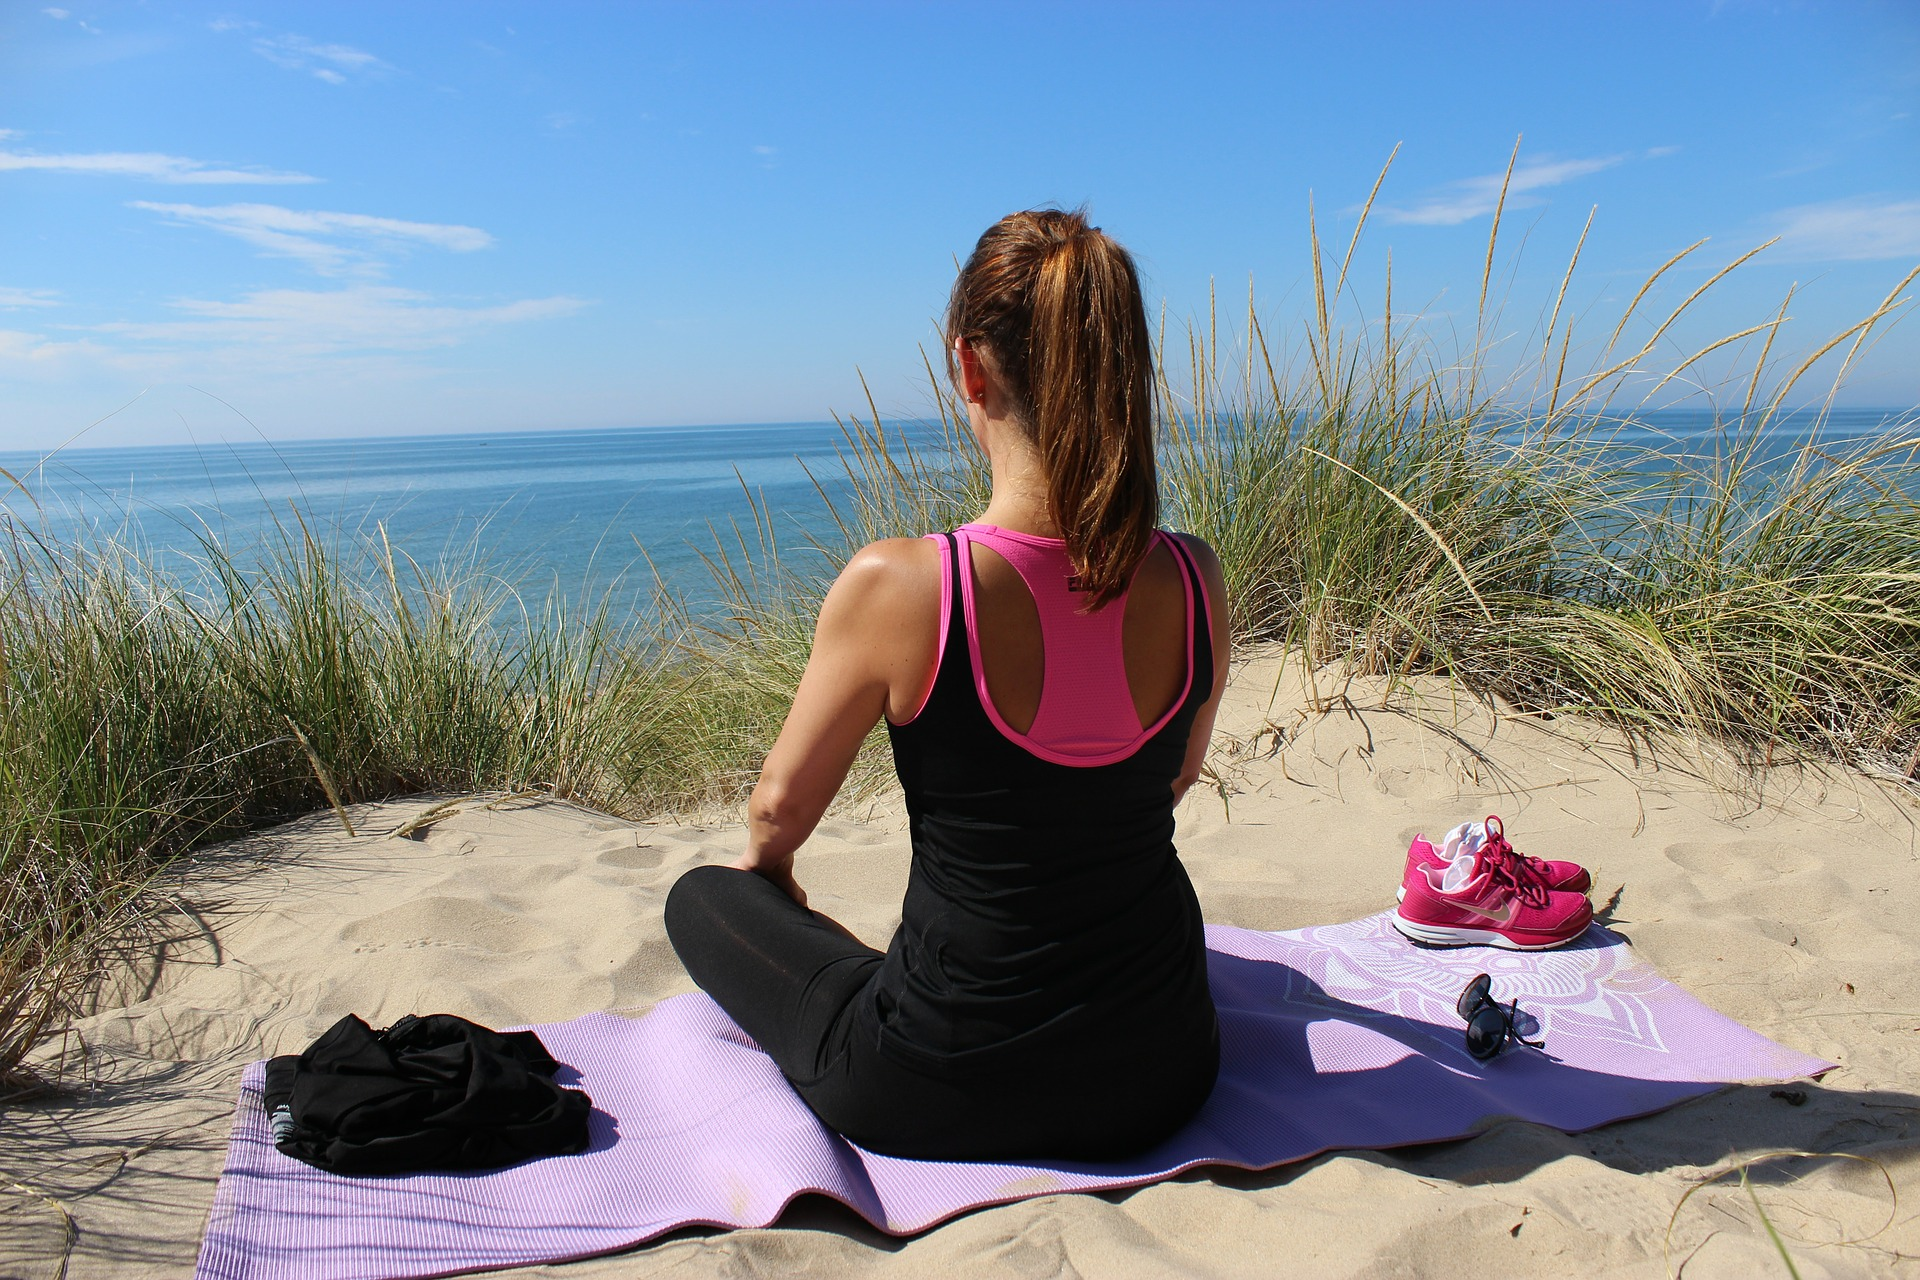 Why Do People Do Yoga?